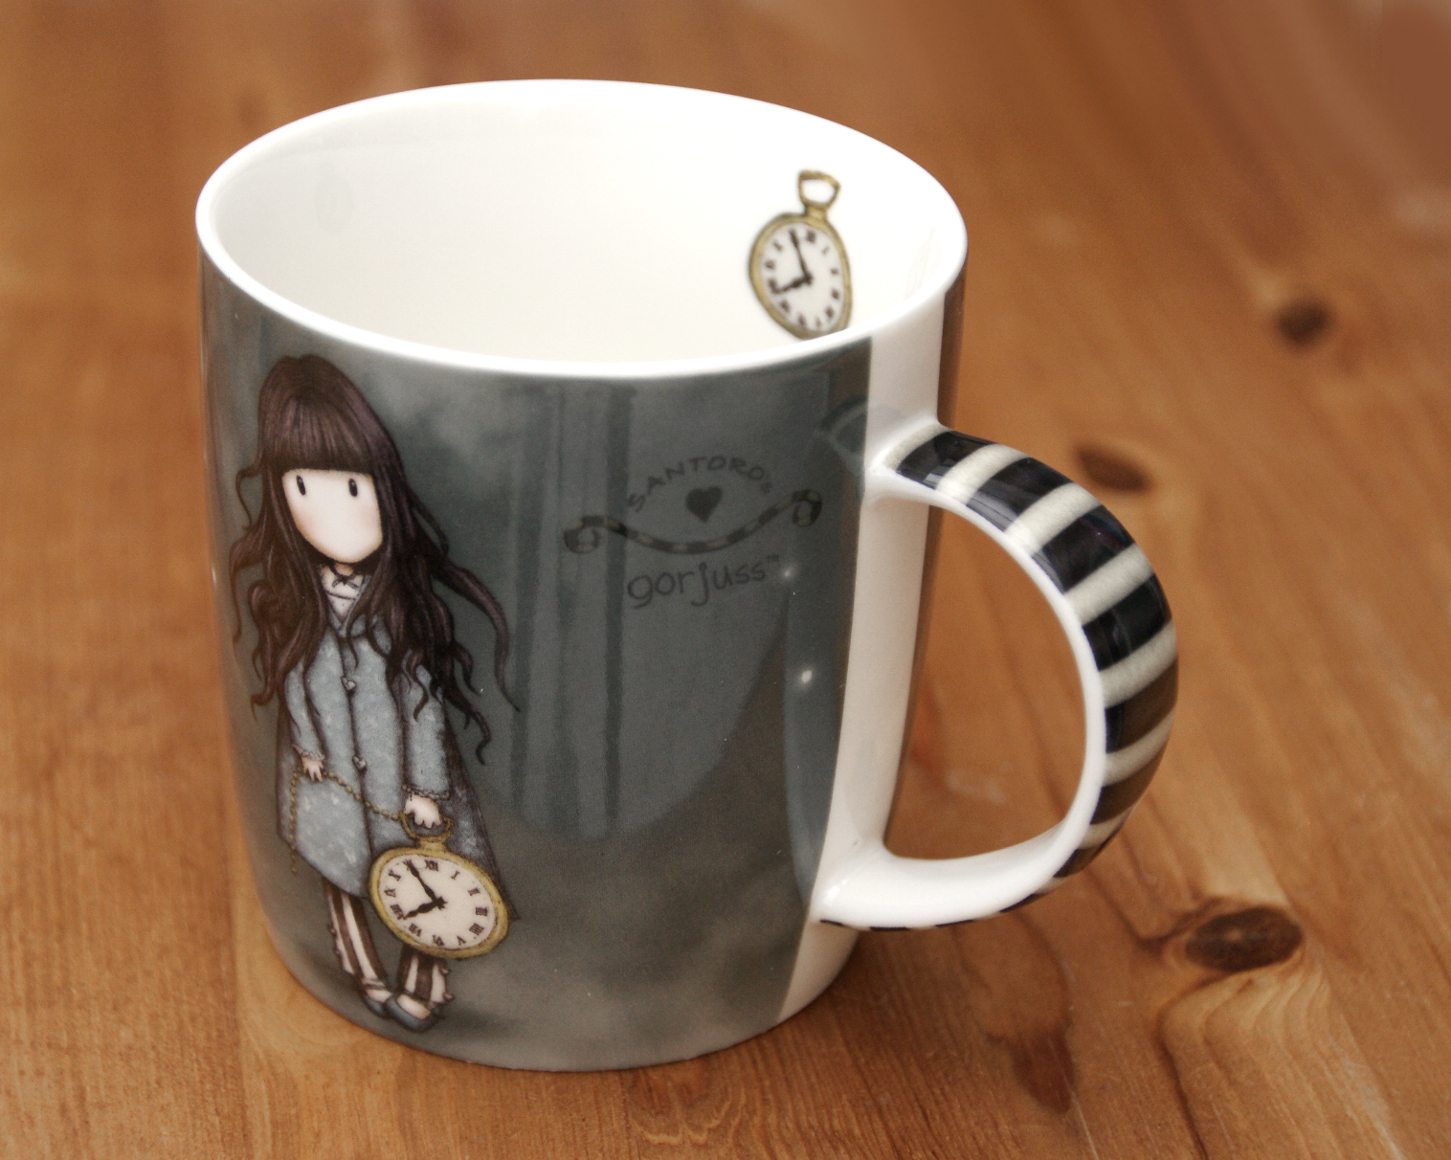 http://www.santoro-london.com/shop/gorjuss-white-rabbit-mug.html